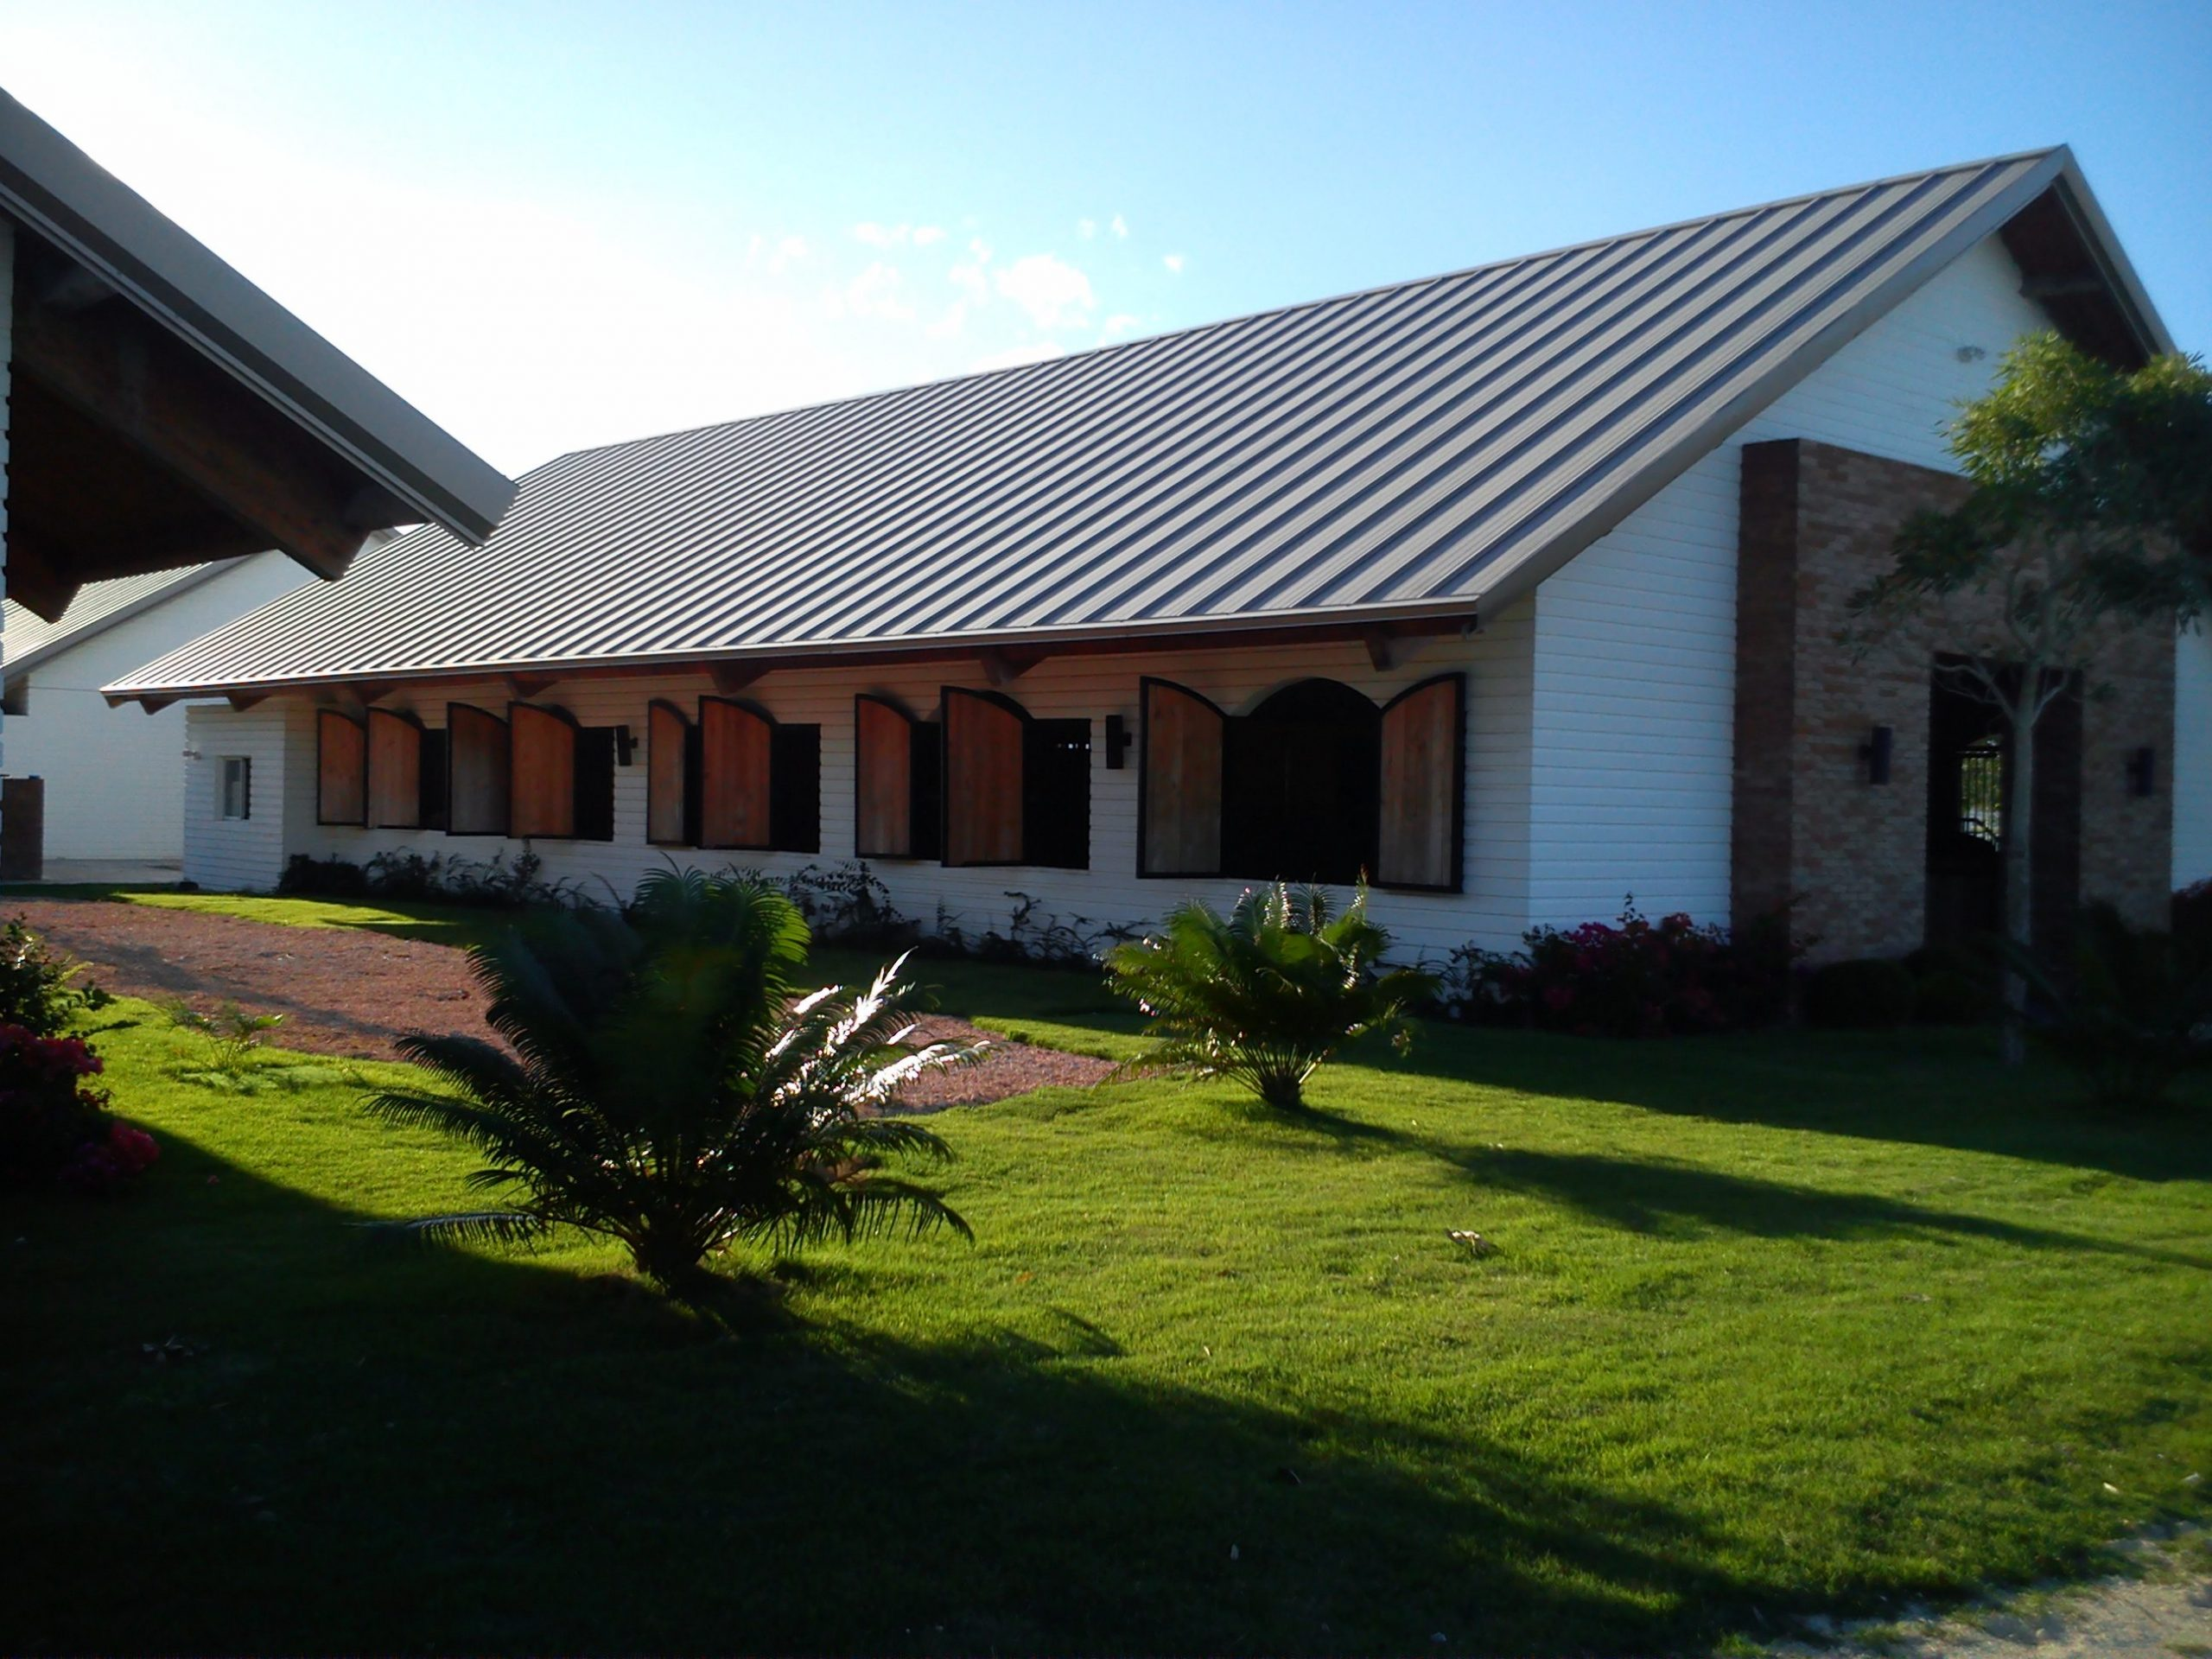 Normerica Timber Frames, Commercial Project, Dominican Republic, Los Establos, Timber Frame Roof, Barn